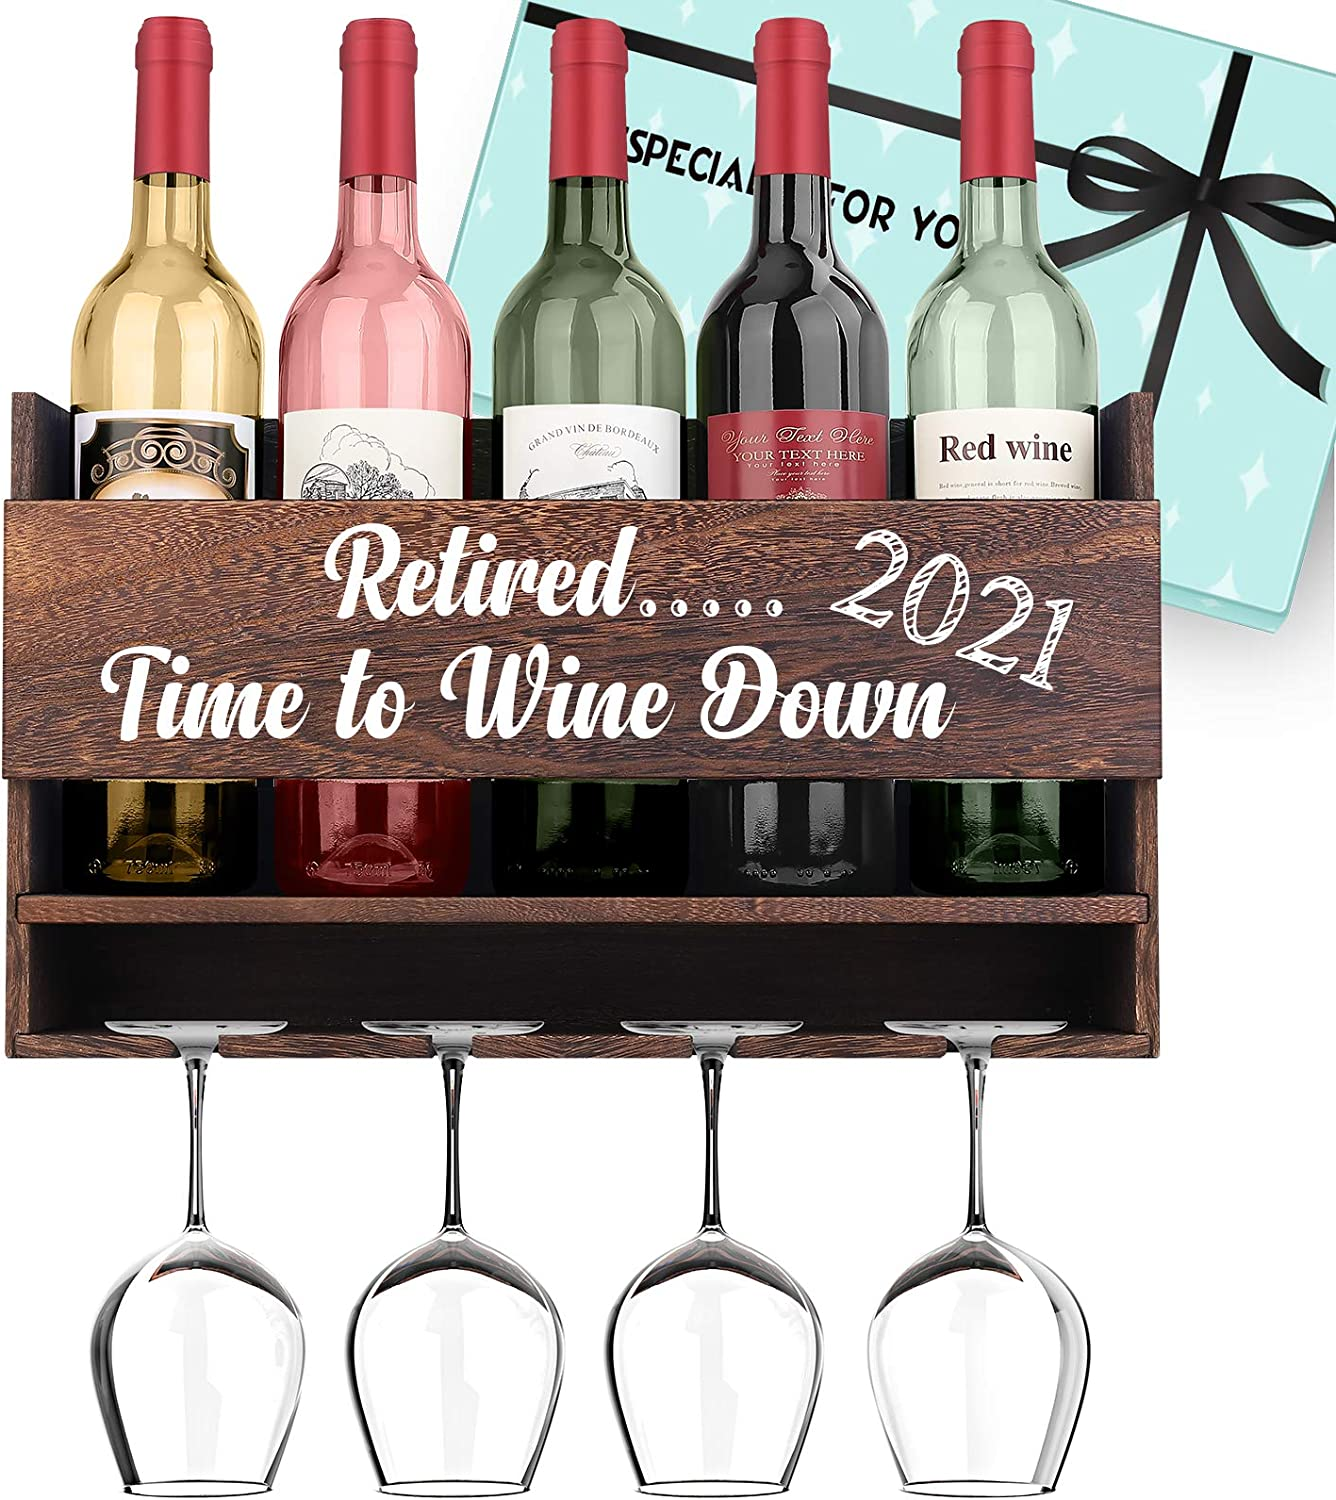 Anniversary Gifts for Her Gifts for Him Love The Wine Youre With Wine Rack Valentines Day Gifts for Boyfriend Romatic Gifts for Girlfriend Birthday Gifts for Husband Gifts for Wife Wedding Gifts for Couples